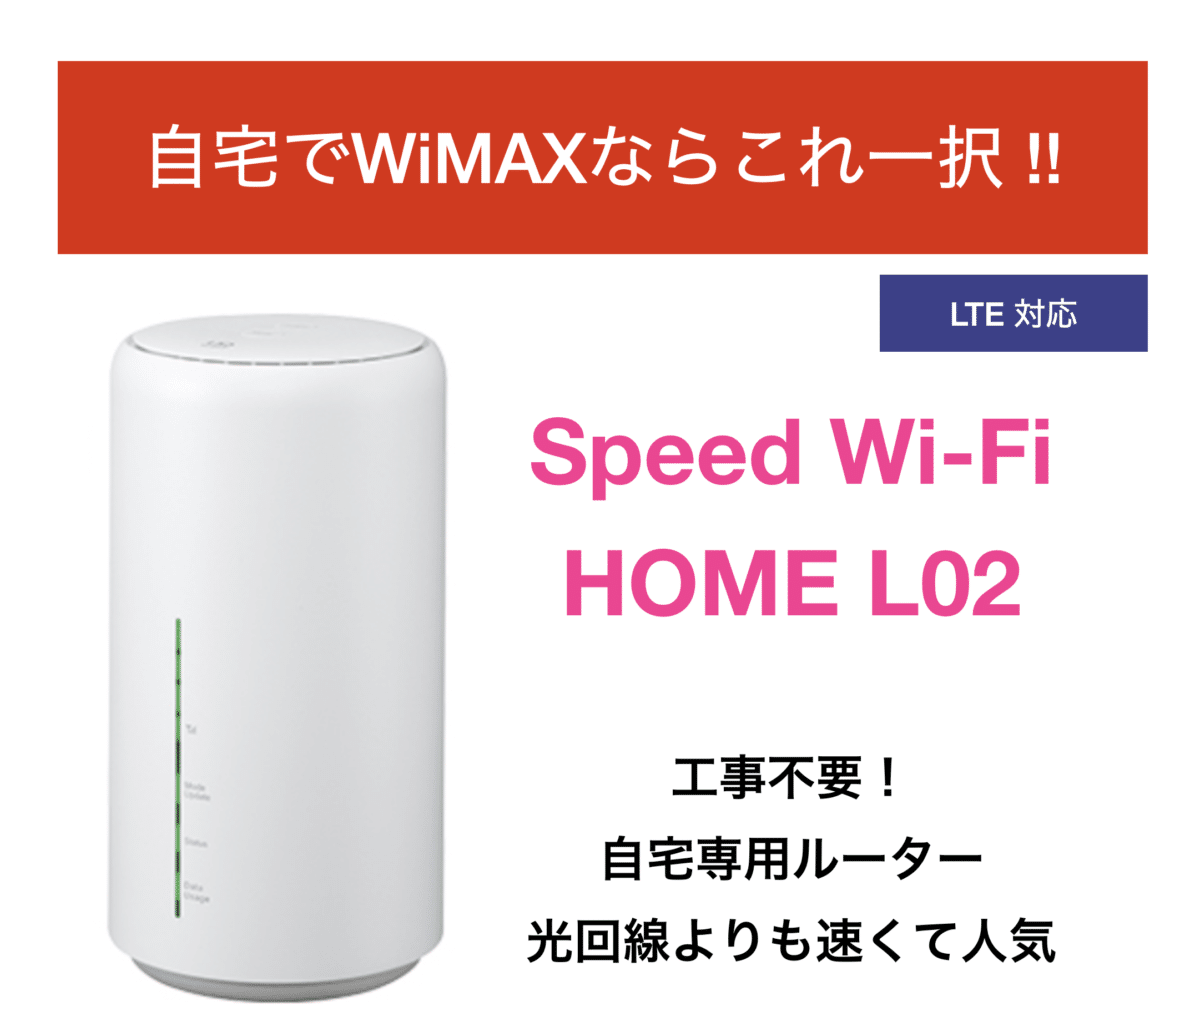 speed Wi-Fi HOME L02工事不要のWiMAXホームルーター